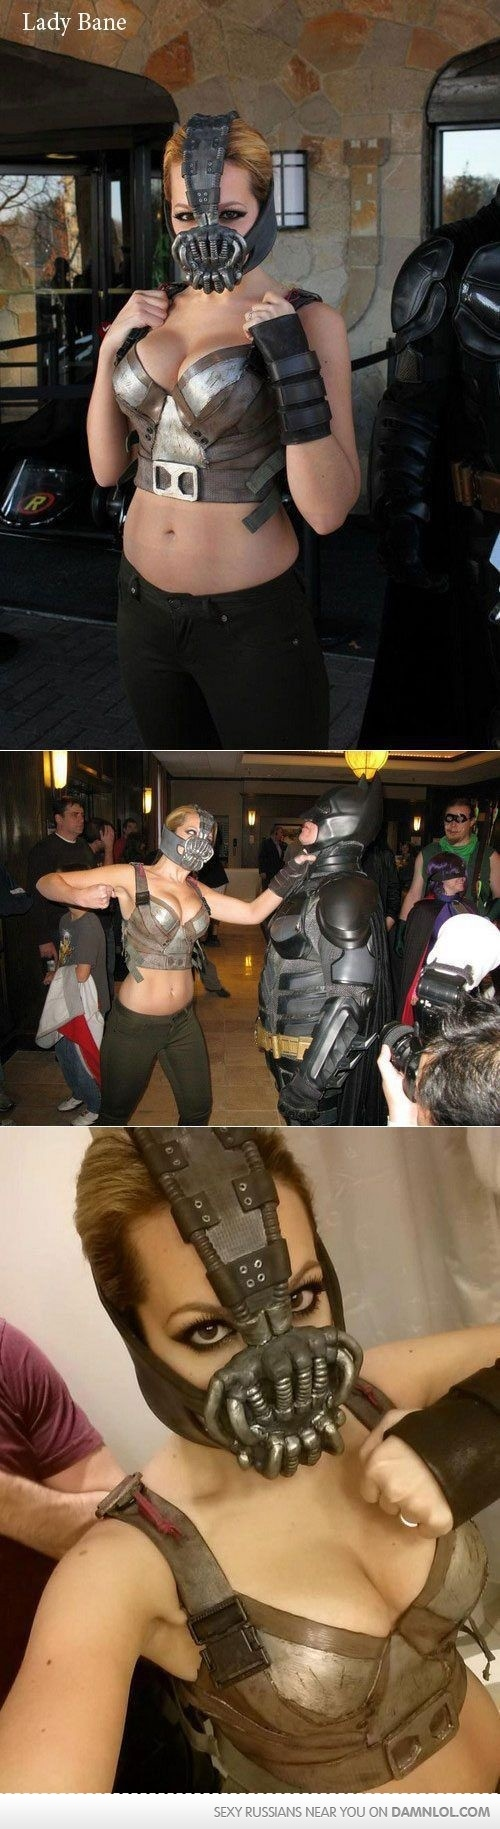 Fem-Bane cosplay. Normally bad guys aren't really my thing, haha - but this one is really good!